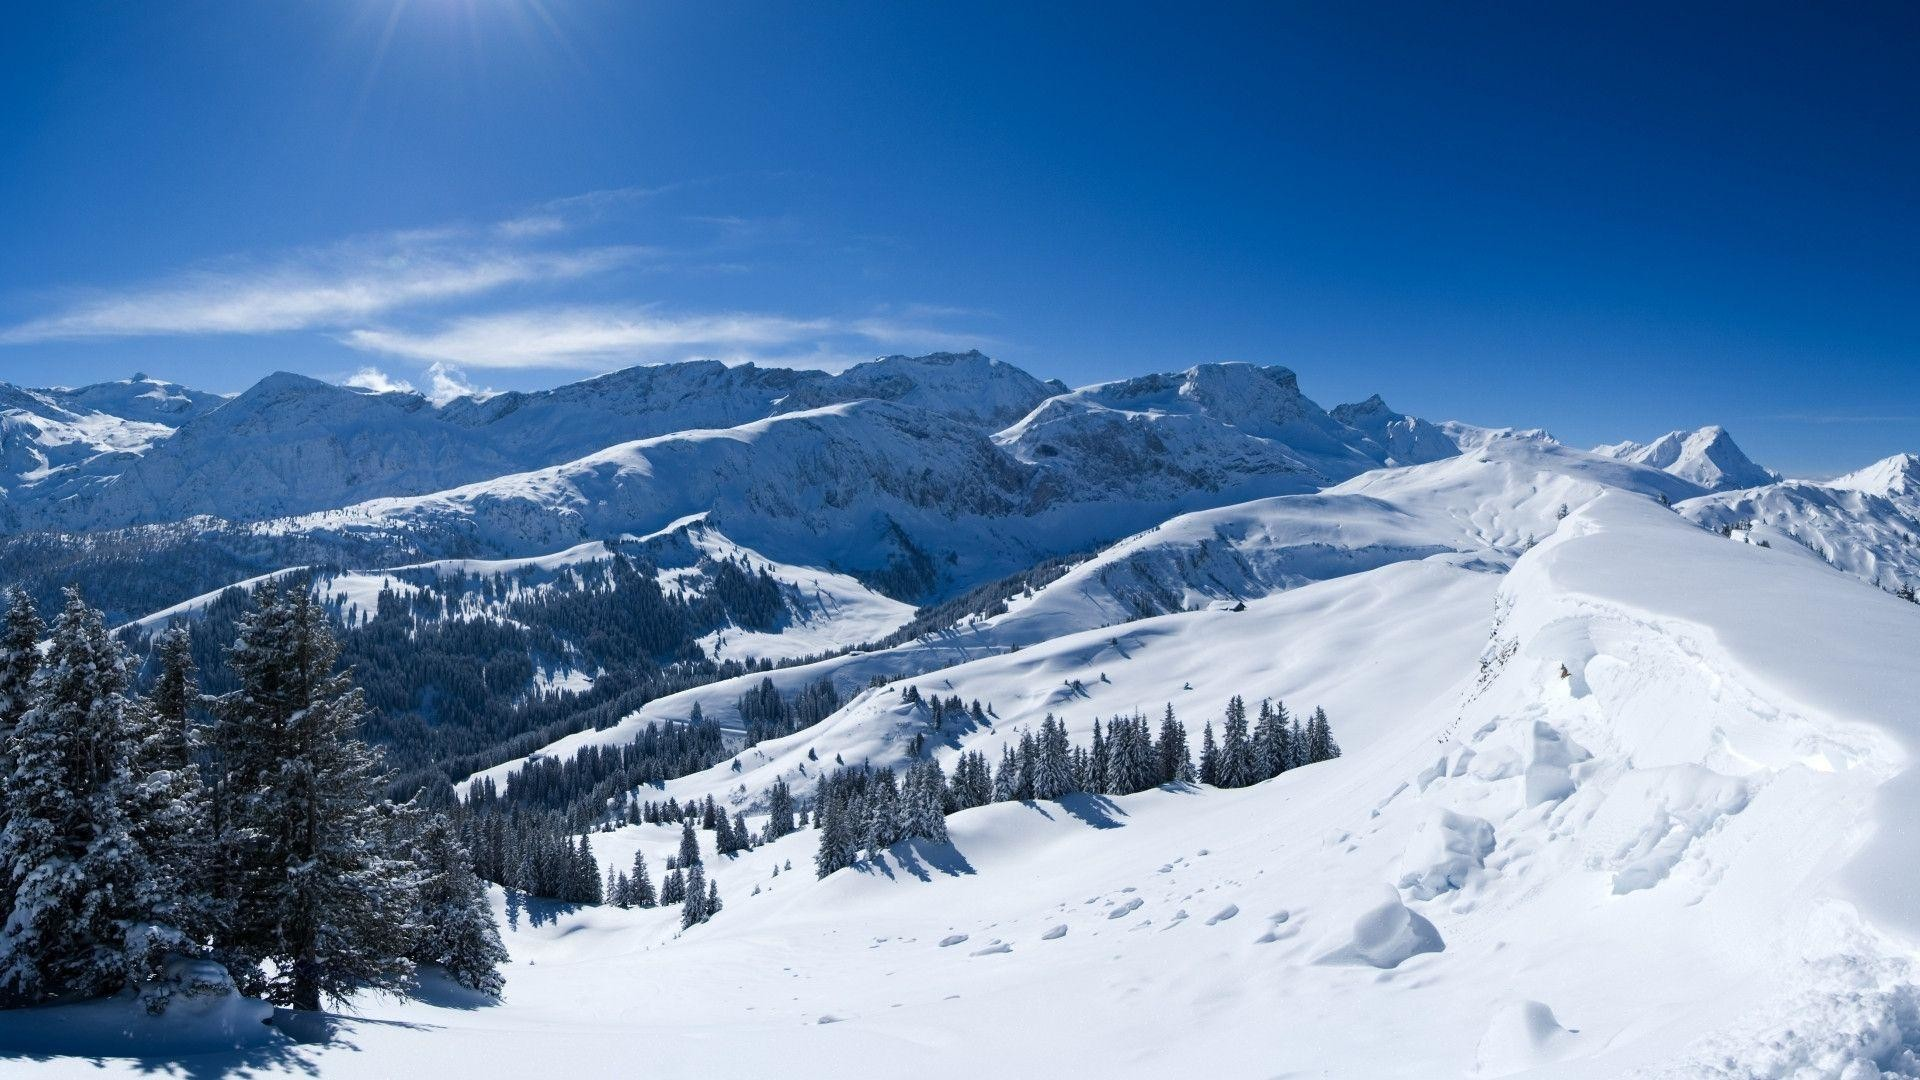 1920x1080 Download Full Resolution Click Here This 49591 Snow Mountain Wallpaper Is Provided